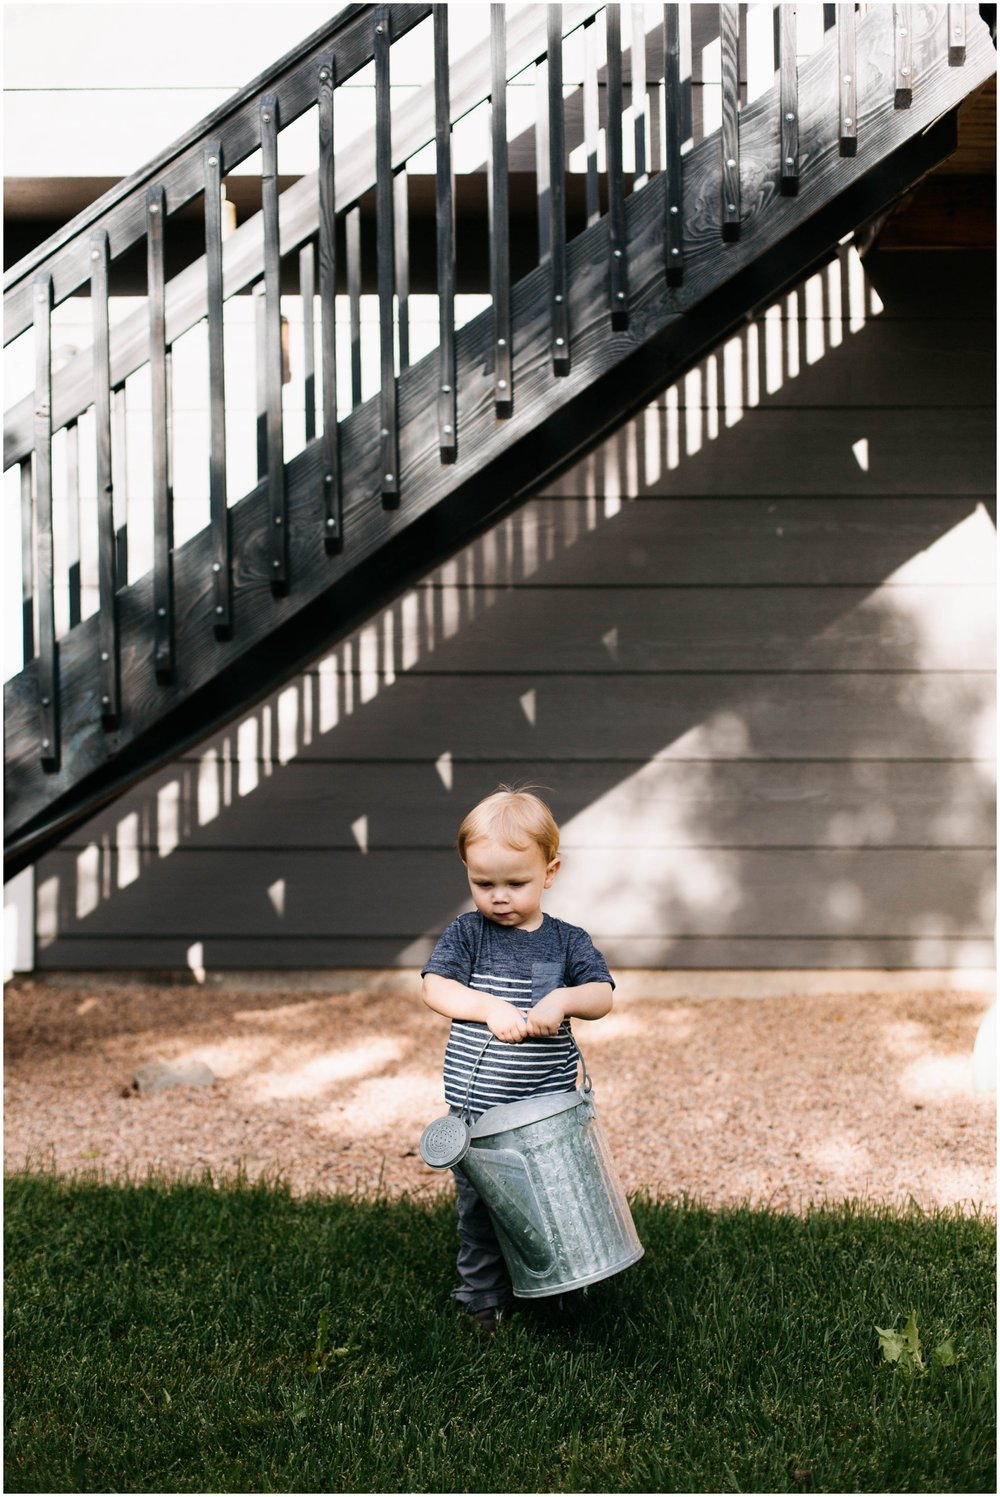 colorado_family_photo_session_unposed_childhood_denver_adventure_taylor_powers__0024.jpg